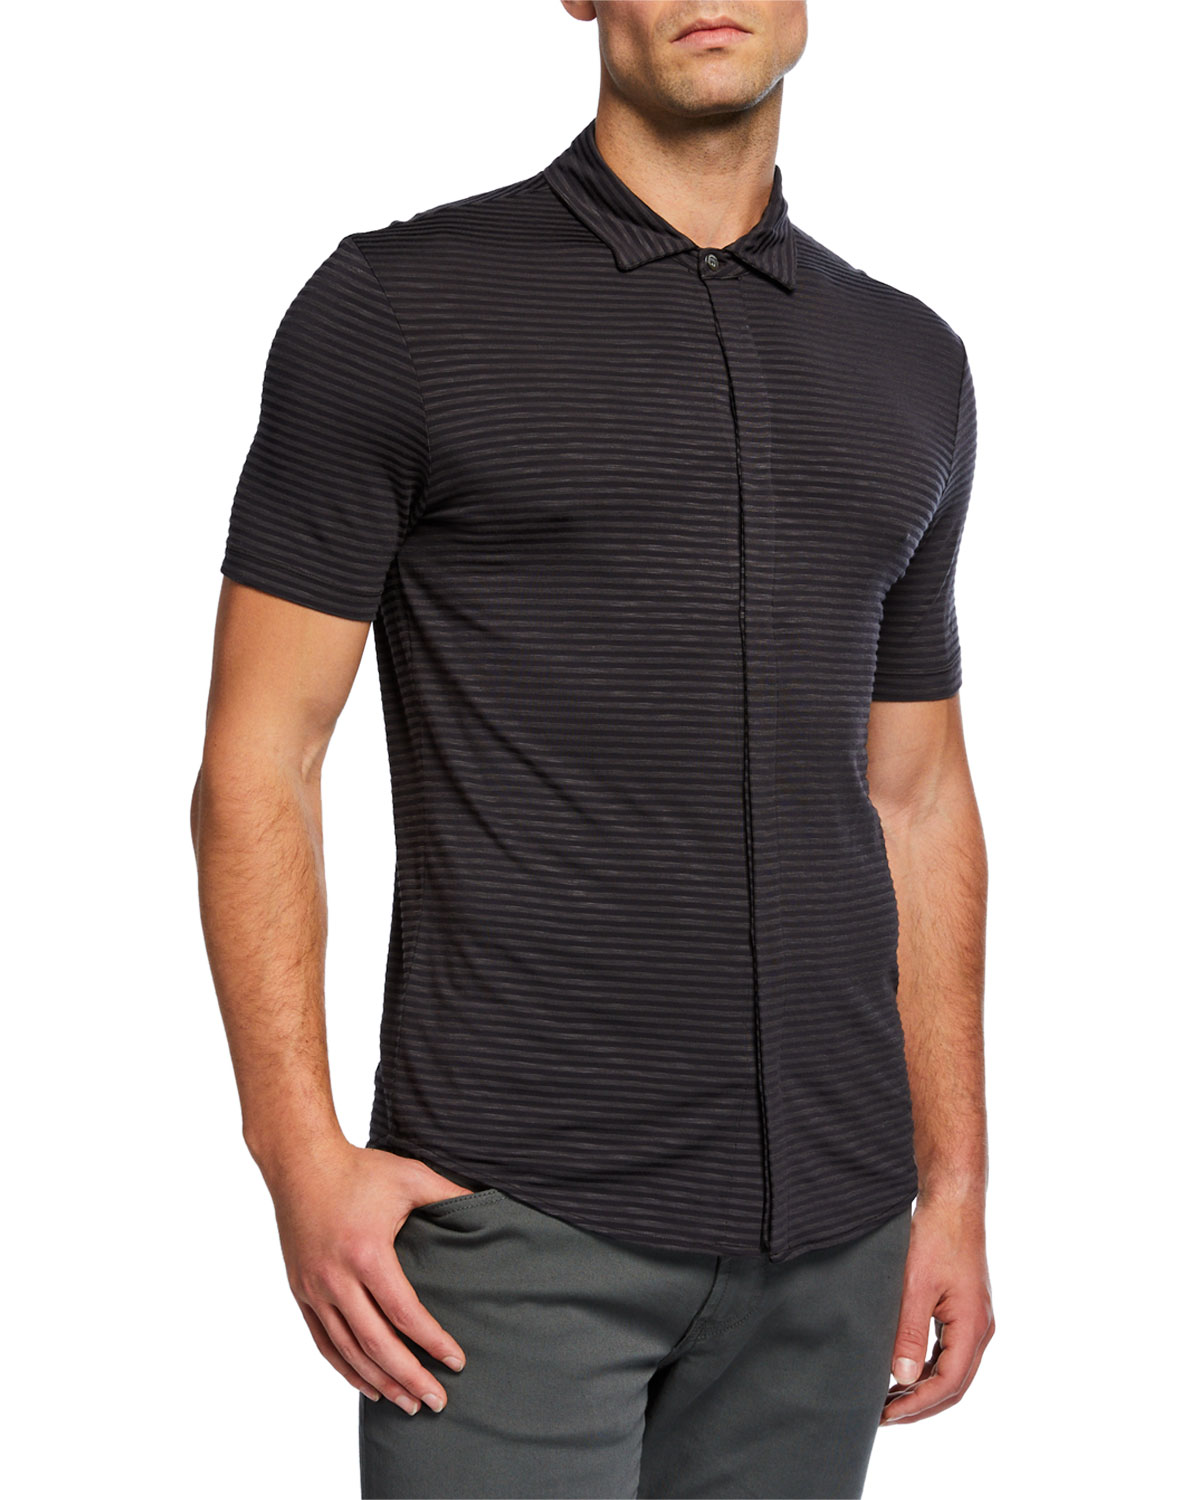 db99f1c00931 Emporio Armani Men s Striped Button-Down Polo Shirt